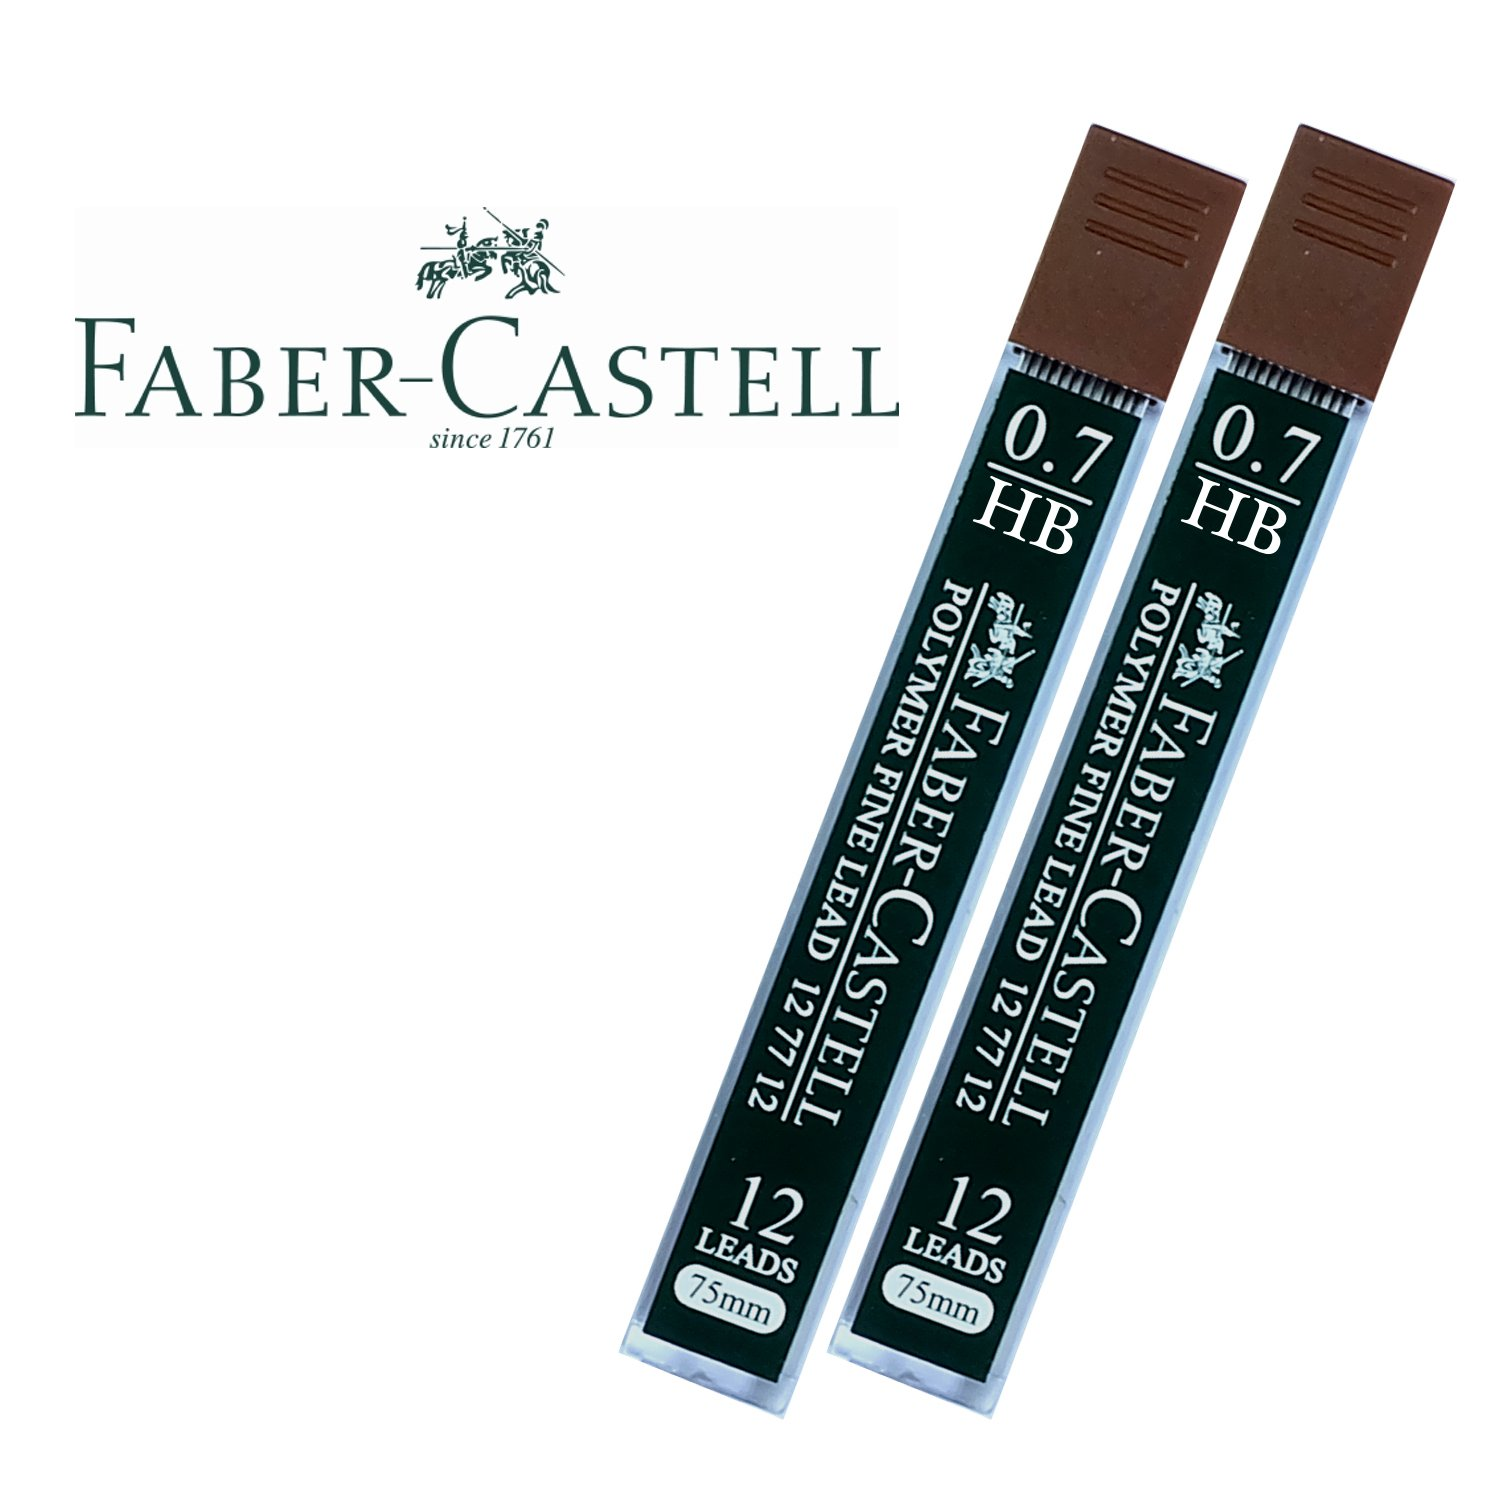 Faber-Castell Lead Refills 0.7mm HB Black 12 Leads [Pack of 2] FB515-B